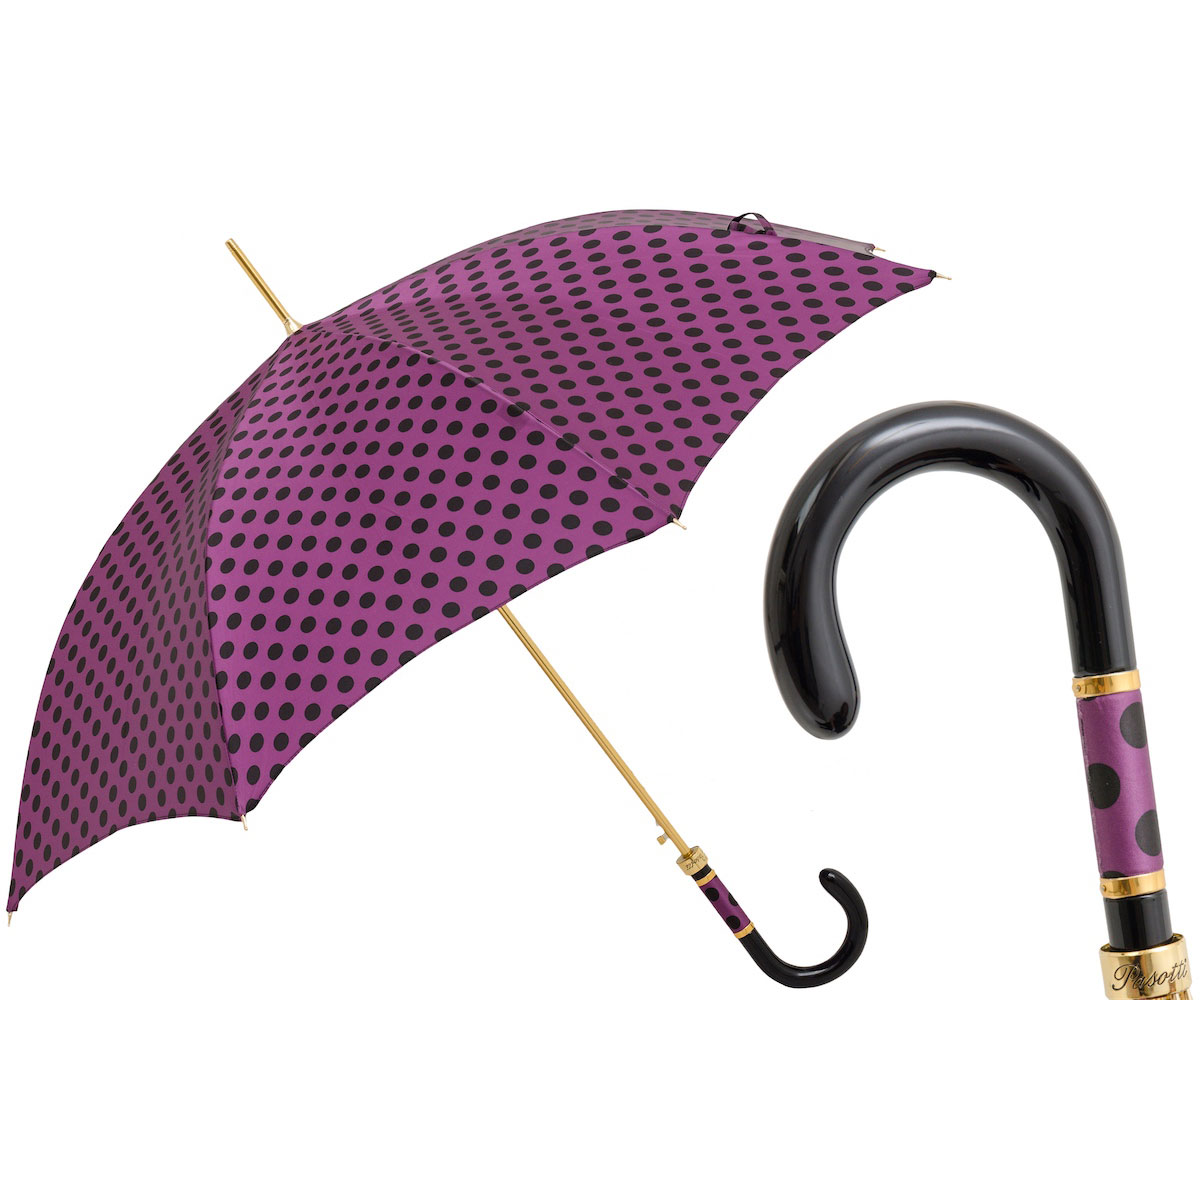 Pasotti Purple with Black Polka Dots Women's Classic Umbrella